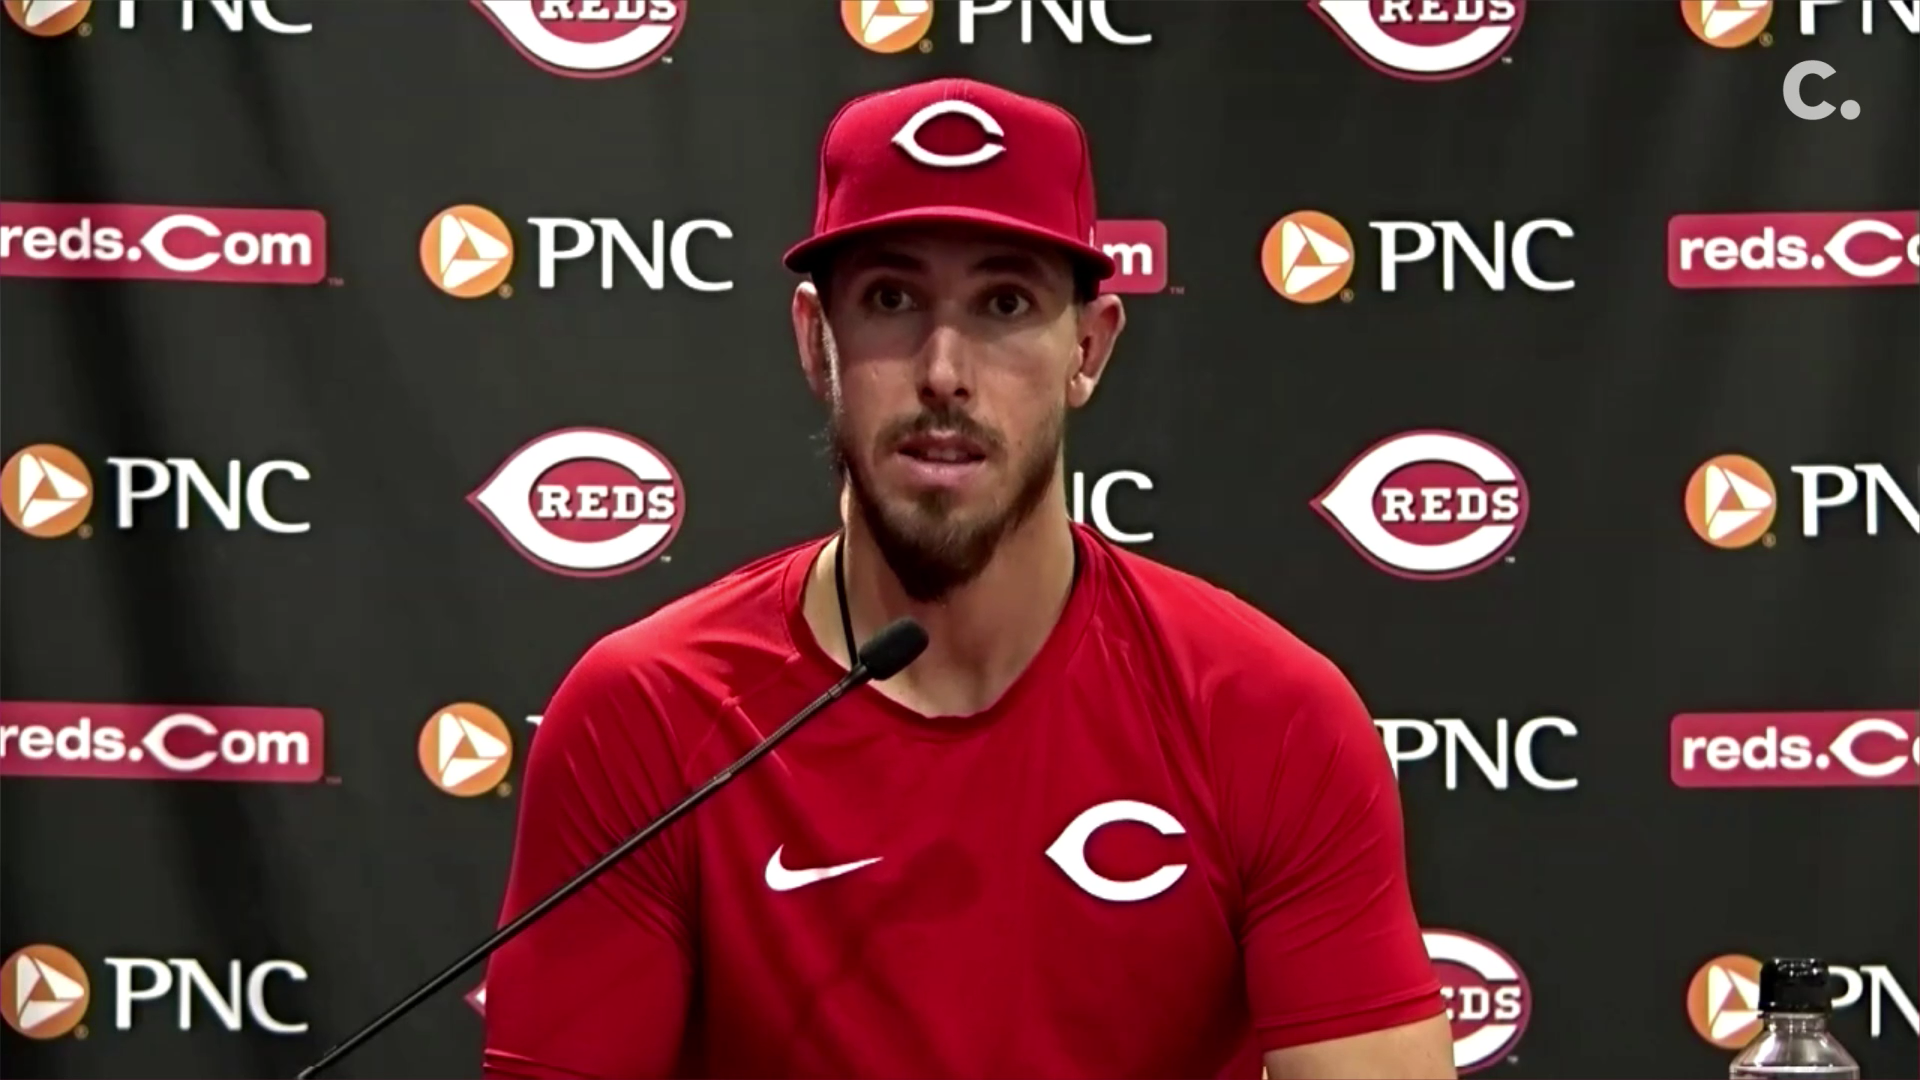 Michael Lorenzen talks about his shoulder injury, being placed on 60-day injured list